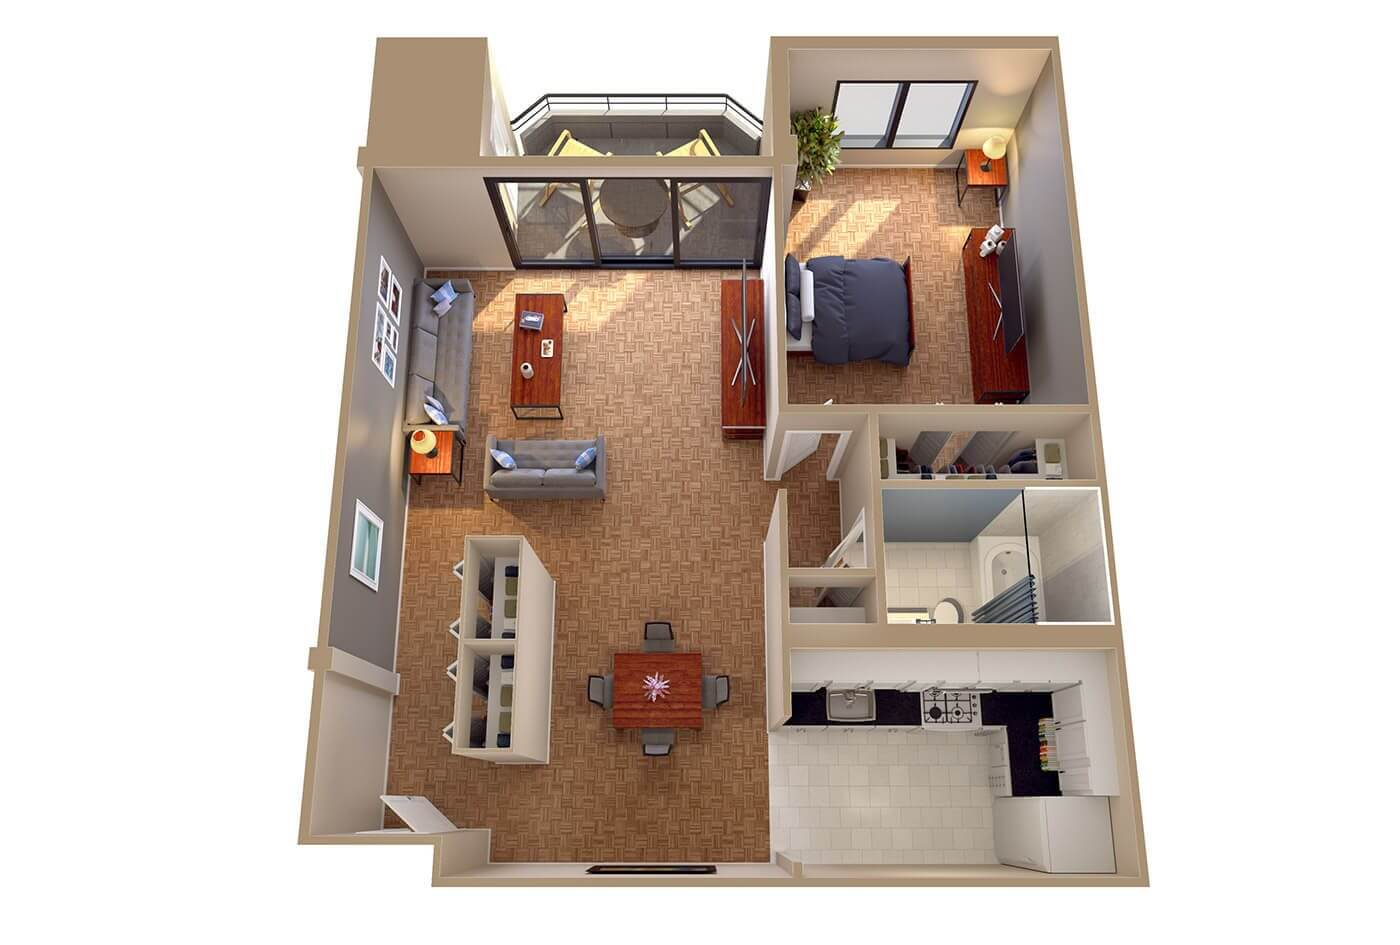 https://www.columbiaplaza.net/wp-content/uploads/2016/04/one-bedroom-floorplan-with-balcony-1400x945.jpg